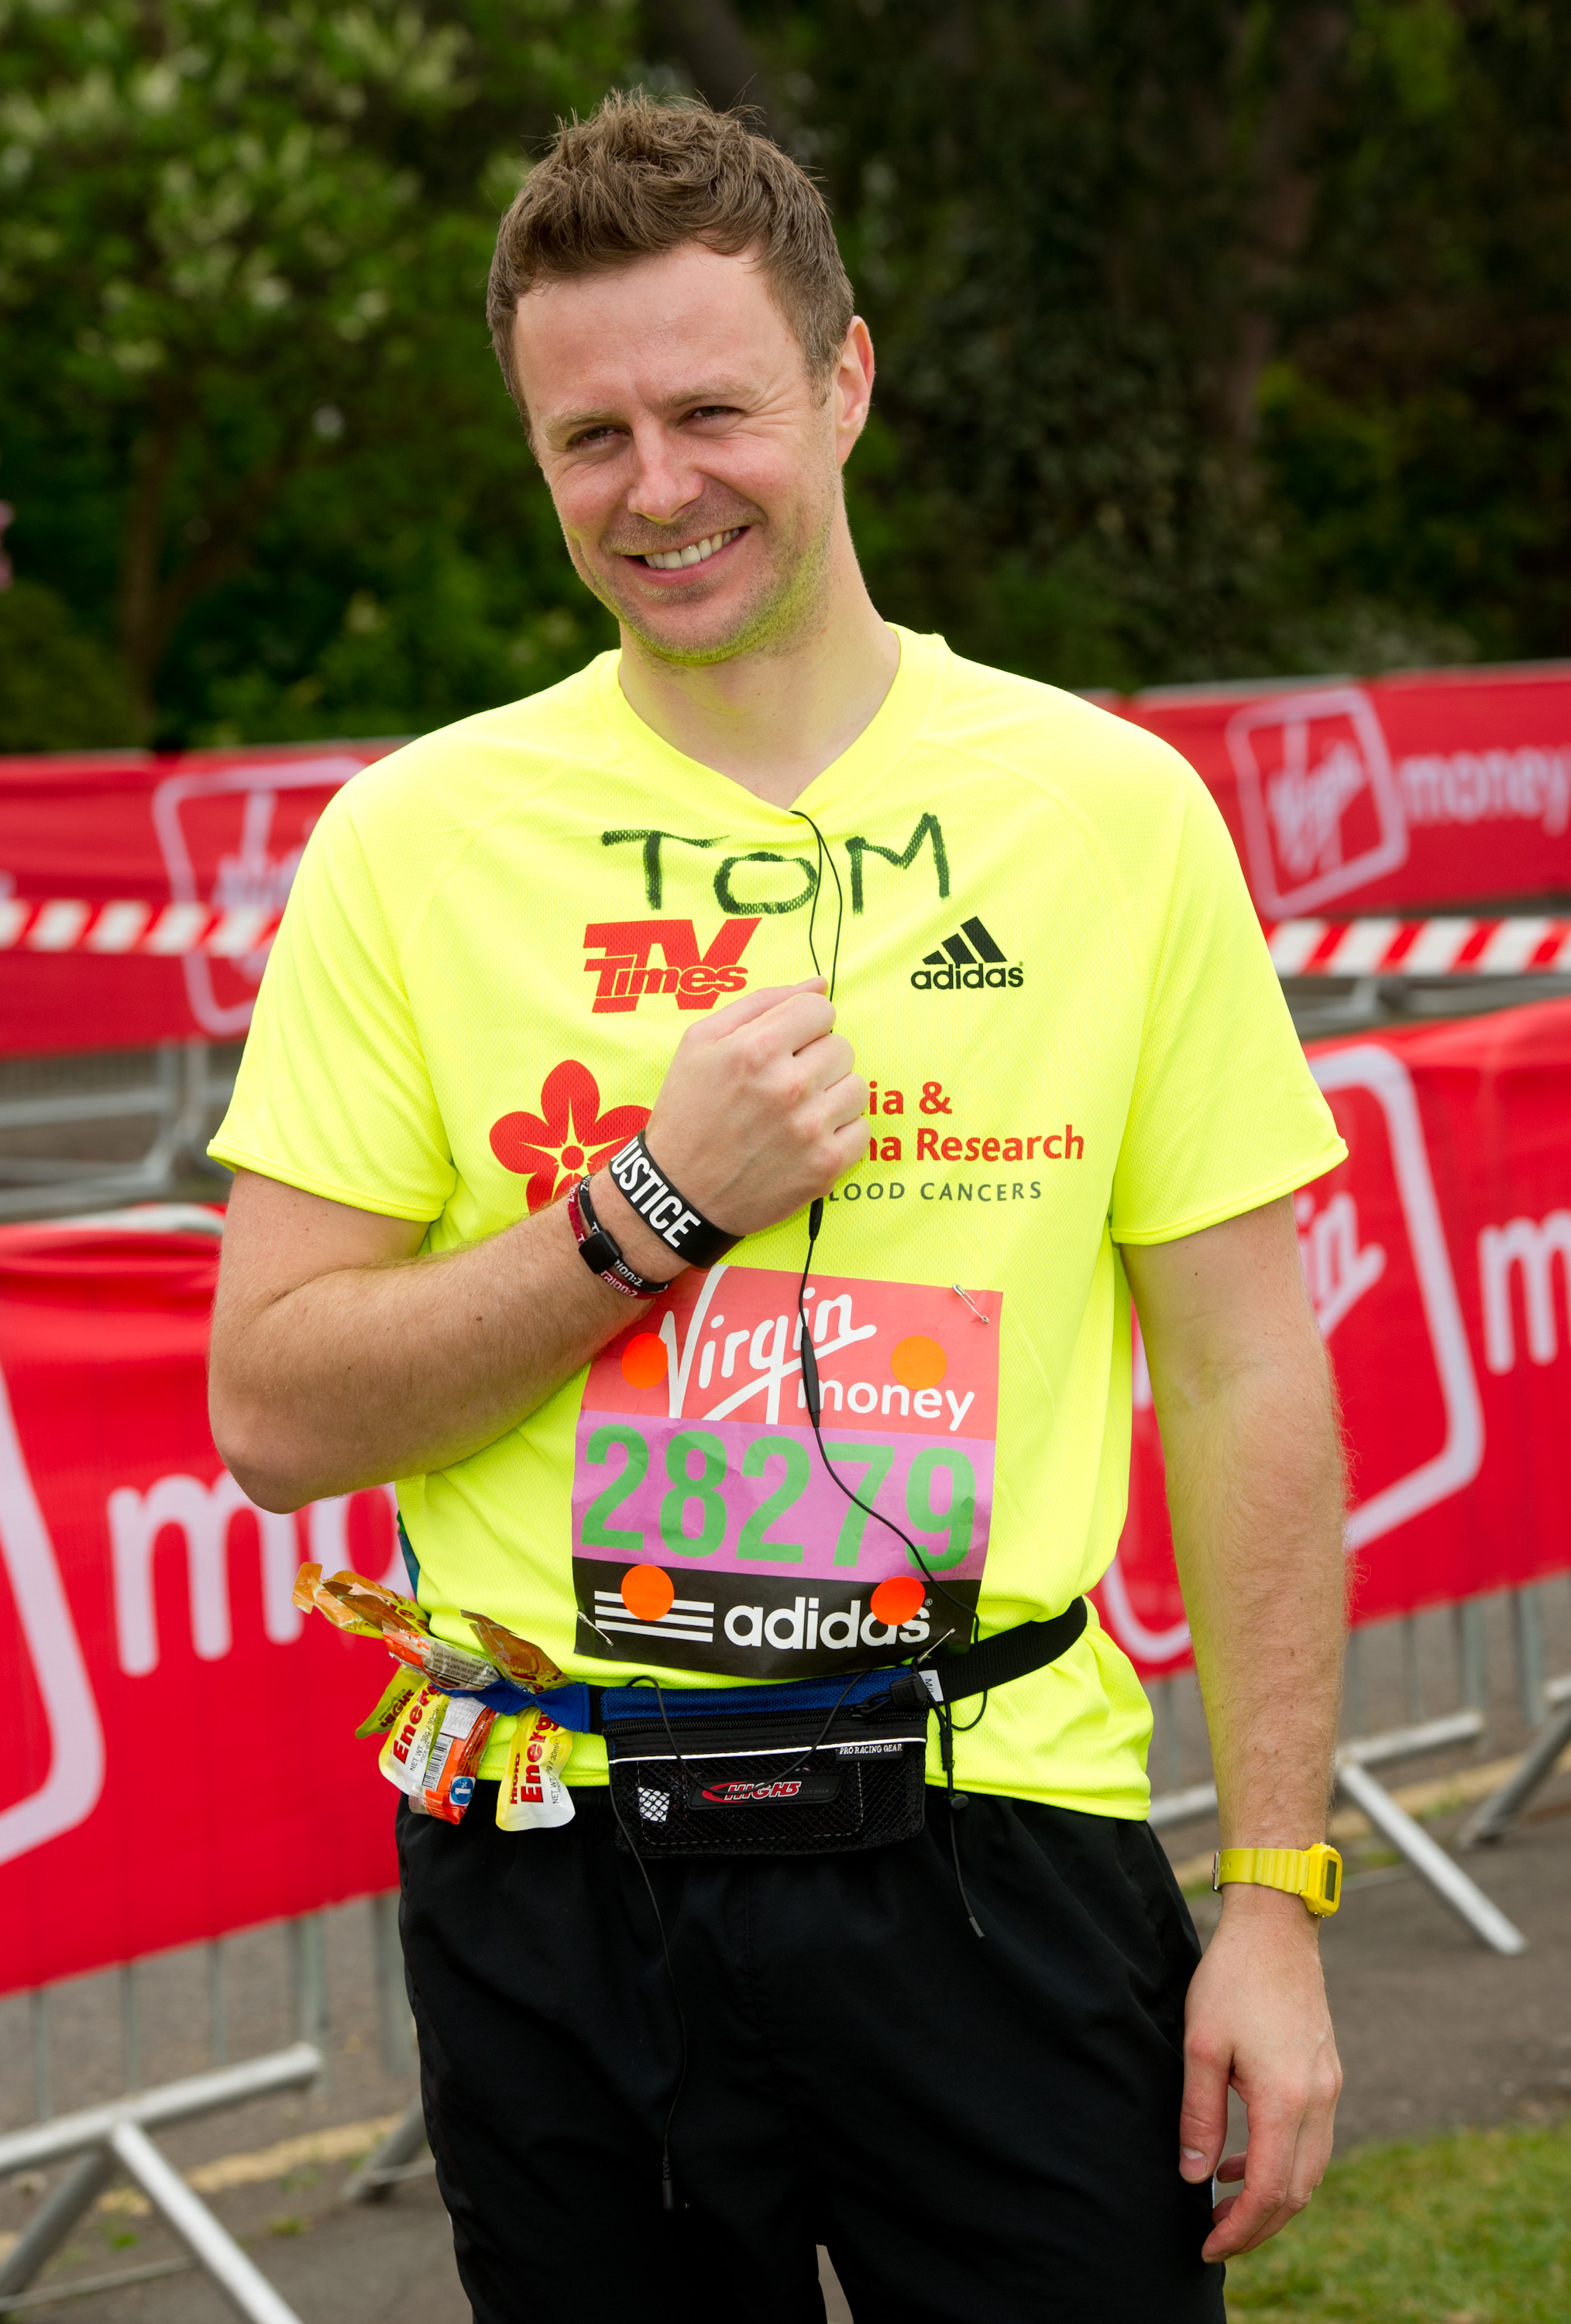 LONDON, ENGLAND - APRIL 17: Tom Lister attends the celebrity start of the 2011 Virgin London Marathon at Blackheath on April 17, 2011 in London, England. (Photo by Ian Gavan/Getty Images)